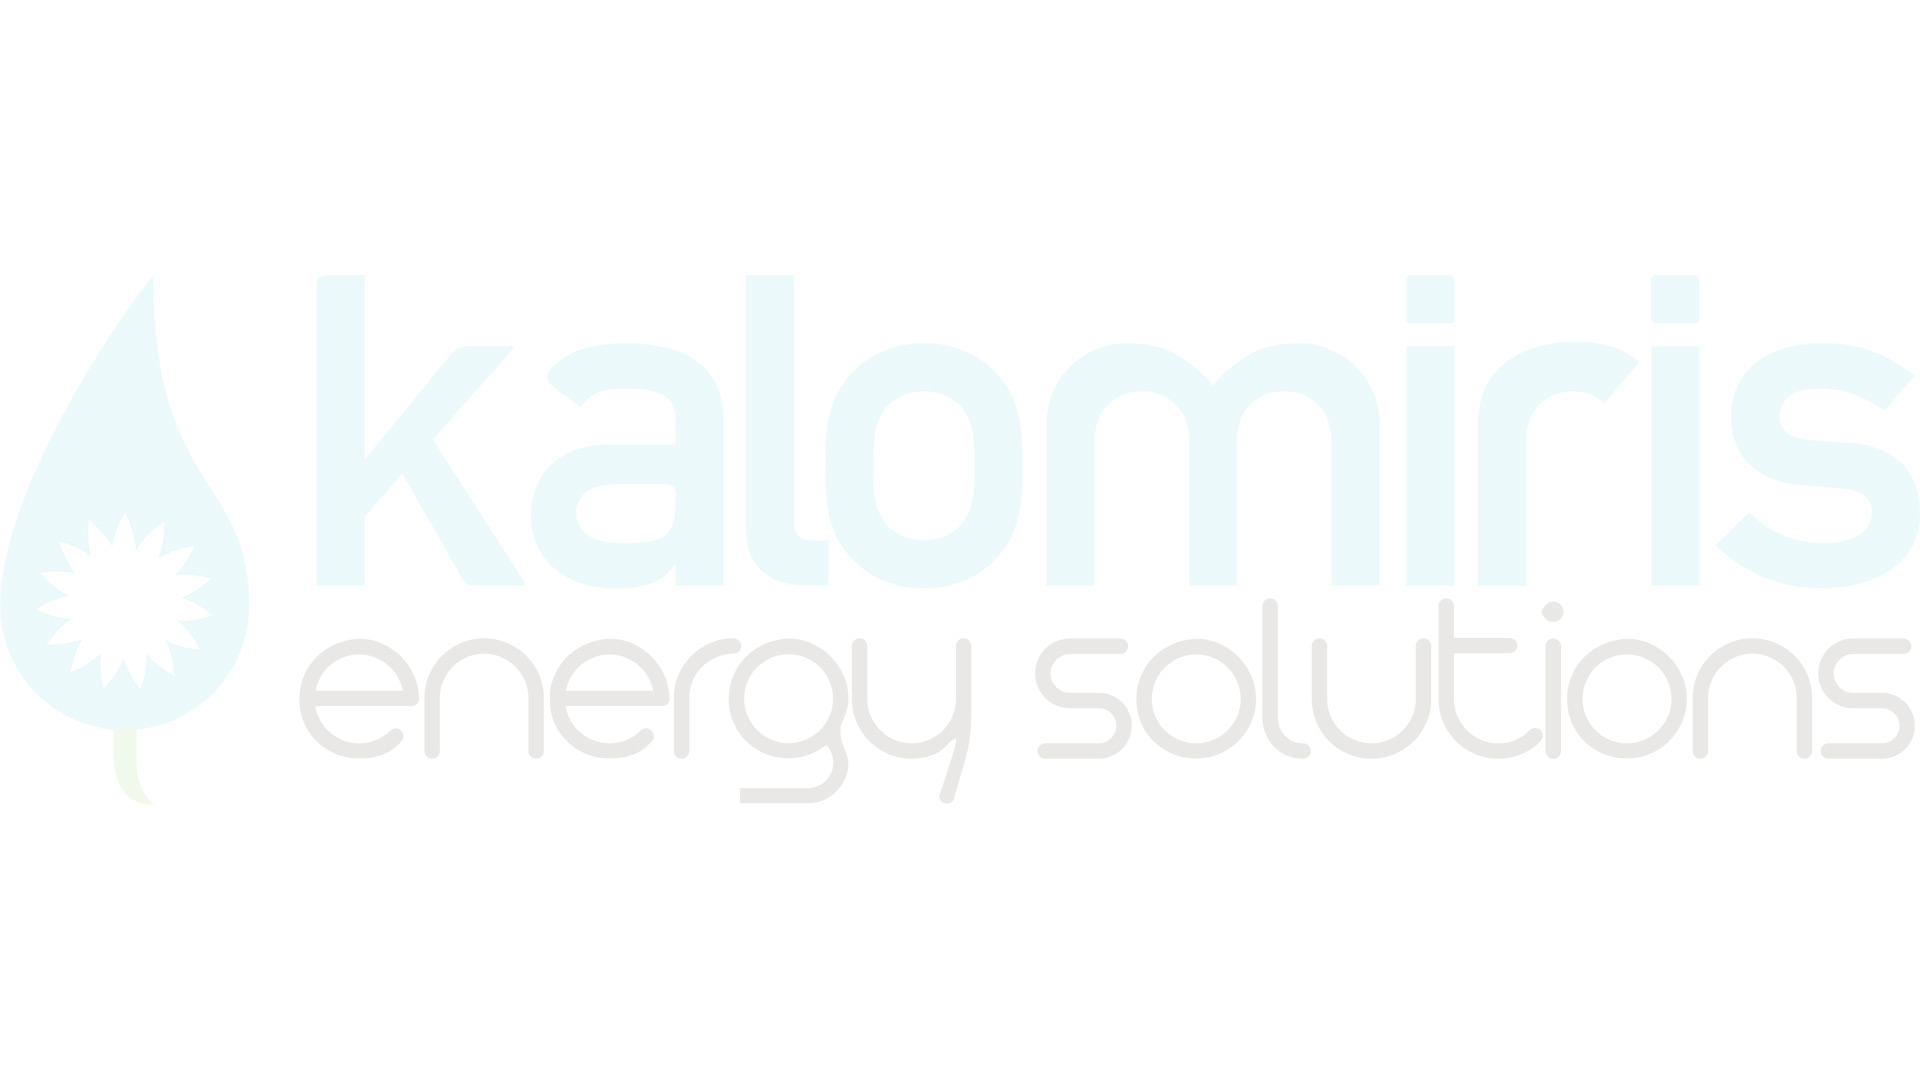 Ceiling Fan CASAFAN ECO NEO II 132 BN Beech /Maple 52 (132cm) with Light KIT